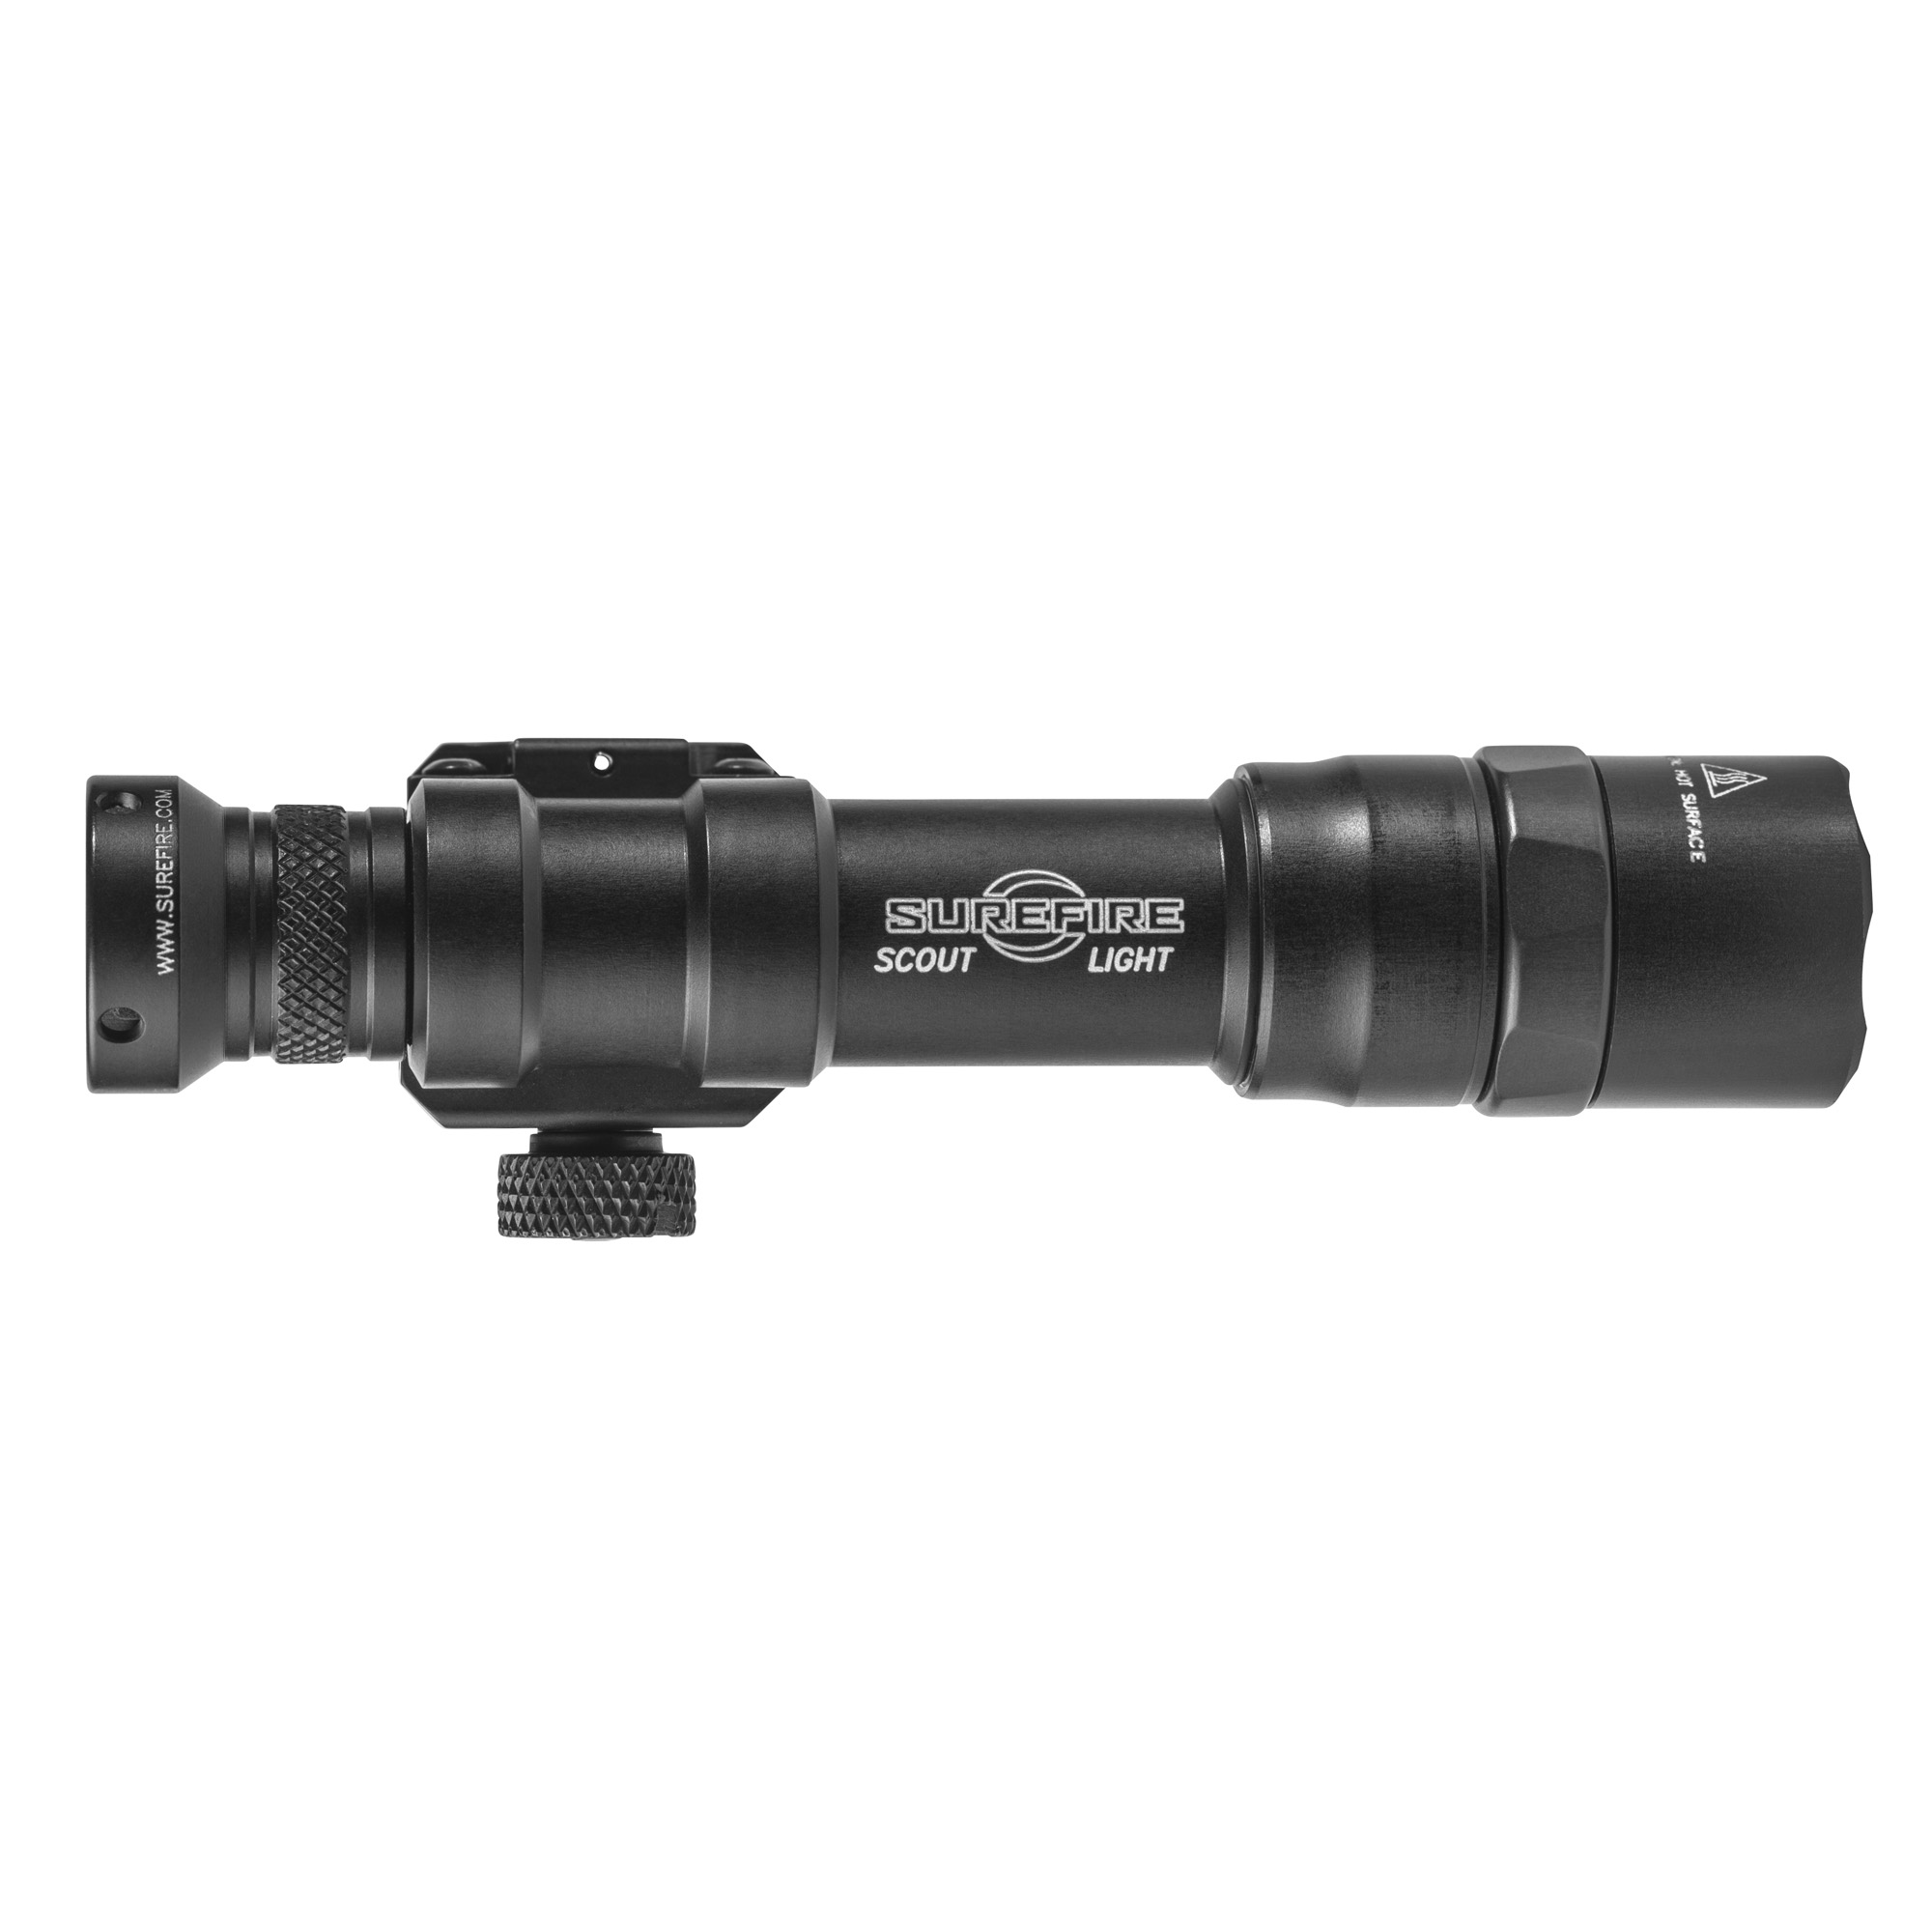 """The M600DF Ultra Scout Light is a lightweight"""" compact Weapon Light featuring an ultra-high-output LED that delivers 1""""200 lumens of blinding white light with 123A batteries and 1""""500 lumens of light with the SF18650B MICRO-USB rechargeable lithium-ion battery. A proprietary Total Internal Reflection (TIR) lens shapes the recoil-proof LED's light into a beam with plenty of reach but enough surround light to accommodate peripheral vision"""" making the M600DF ideal for medium to longer-range applications. The rugged M600DF attaches quickly and securely to any MIL-STD-1913 rail via its integral thumbscrew clamp. A slight press of the Z68 tail cap switch will activate the momentary-on"""" while fully depressing the tail cap until it clicks will activate constant-on. Constructed of lightweight aerospace aluminum"""" with a Mil-Spec Hard Anodized finish"""" and O-ring sealed to keep out the elements"""" the tough M600DF will endure combat-like conditions without any sacrifice in weapon maneuverability."""